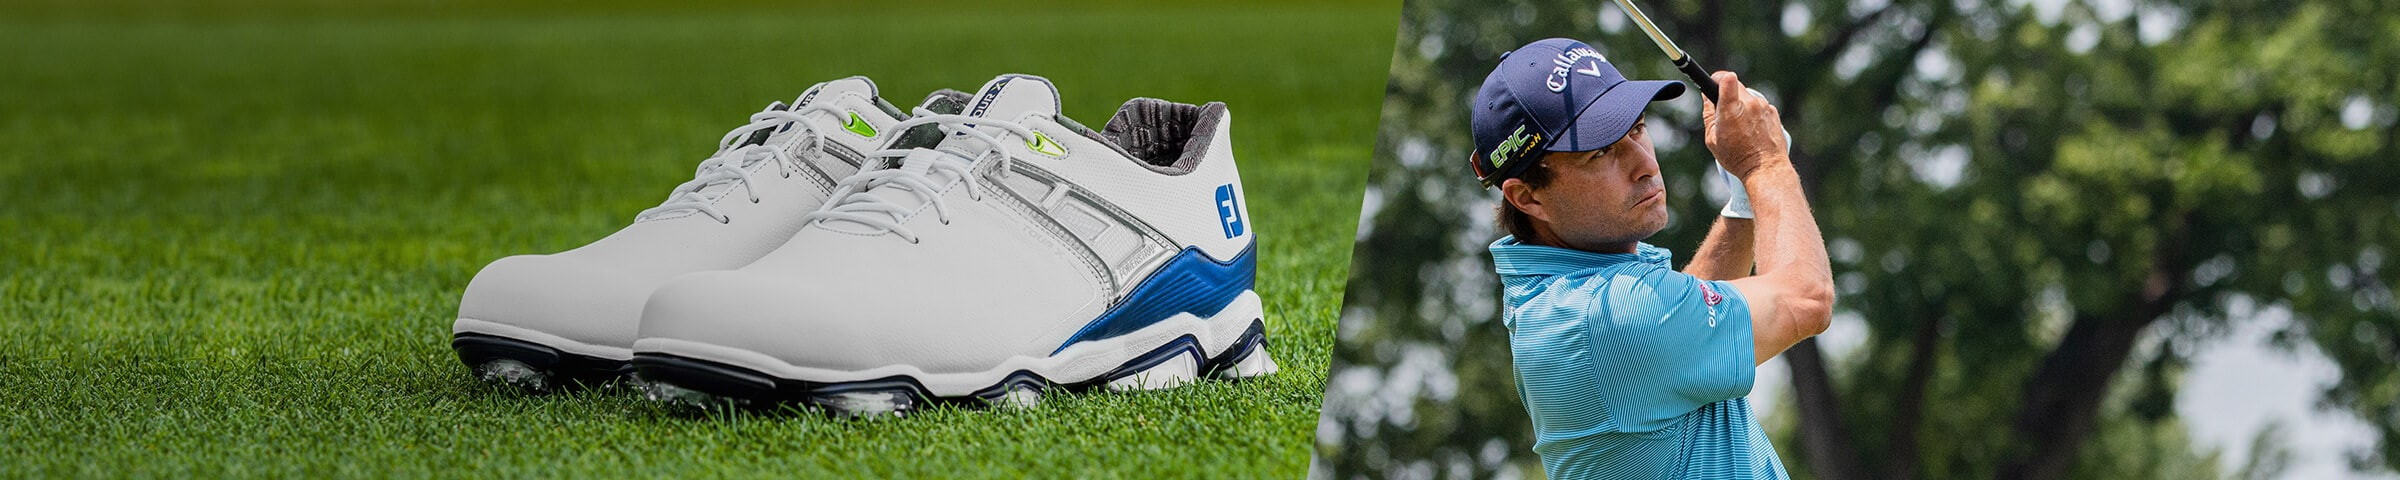 FootJoy Tour X PowerStrap Spiked Golf Shoes